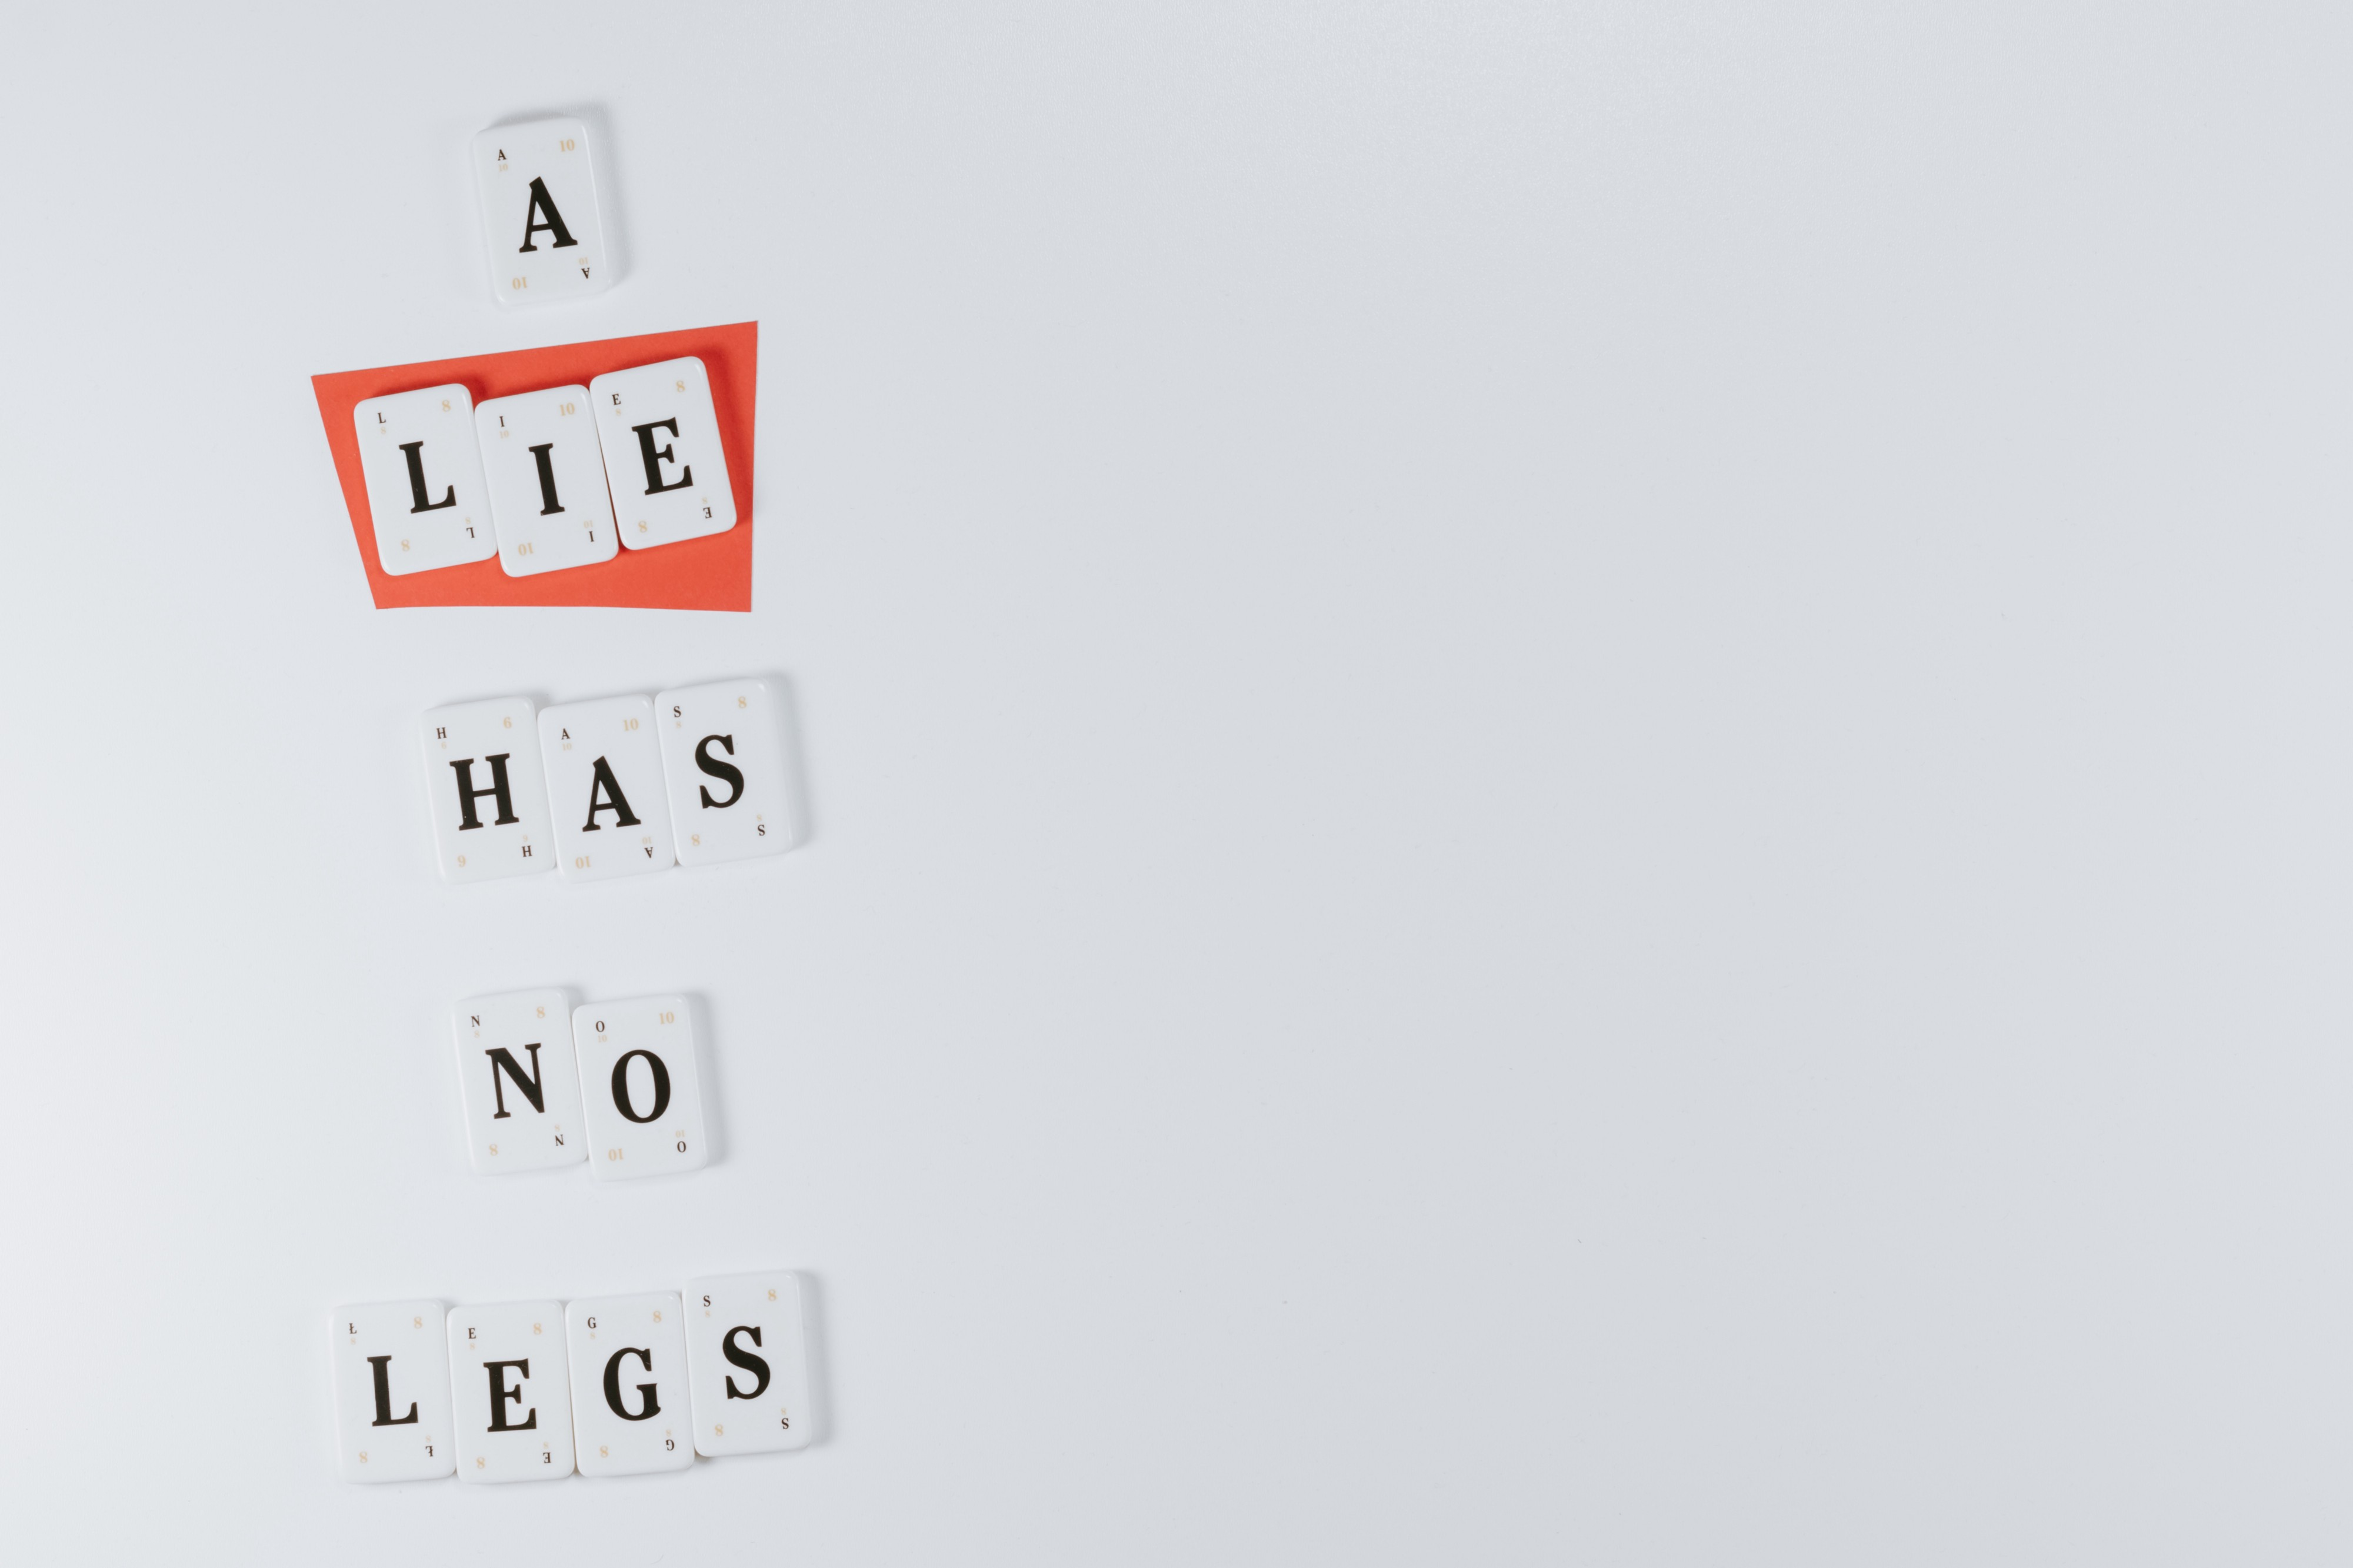 """Scrabble-like tiles that spell out, """"A Lie Has No Legs."""""""